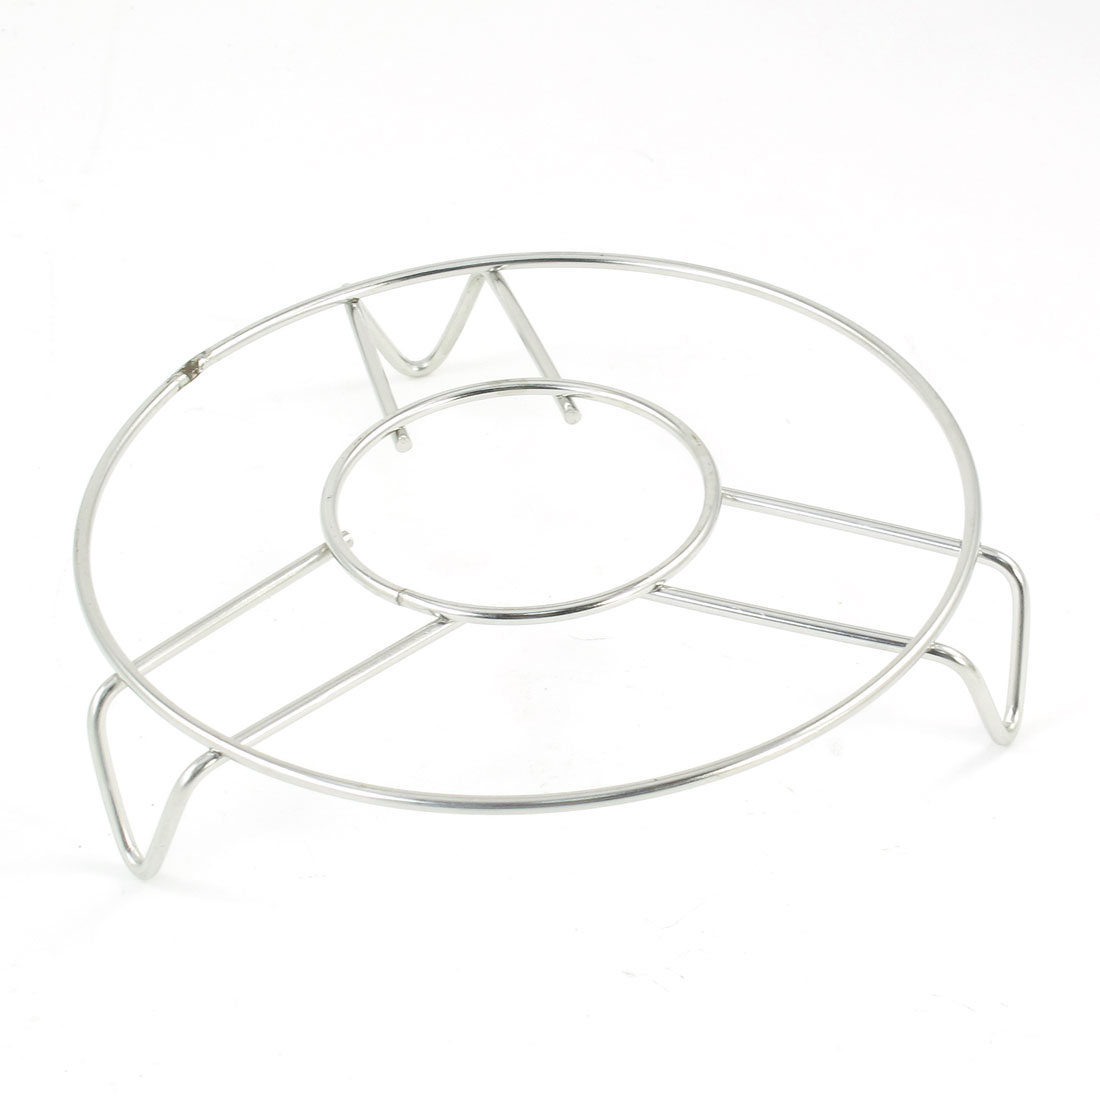 "Home Cooking 5.4"" Dia Silver Tone Three Legs Steamer Rack Stand"